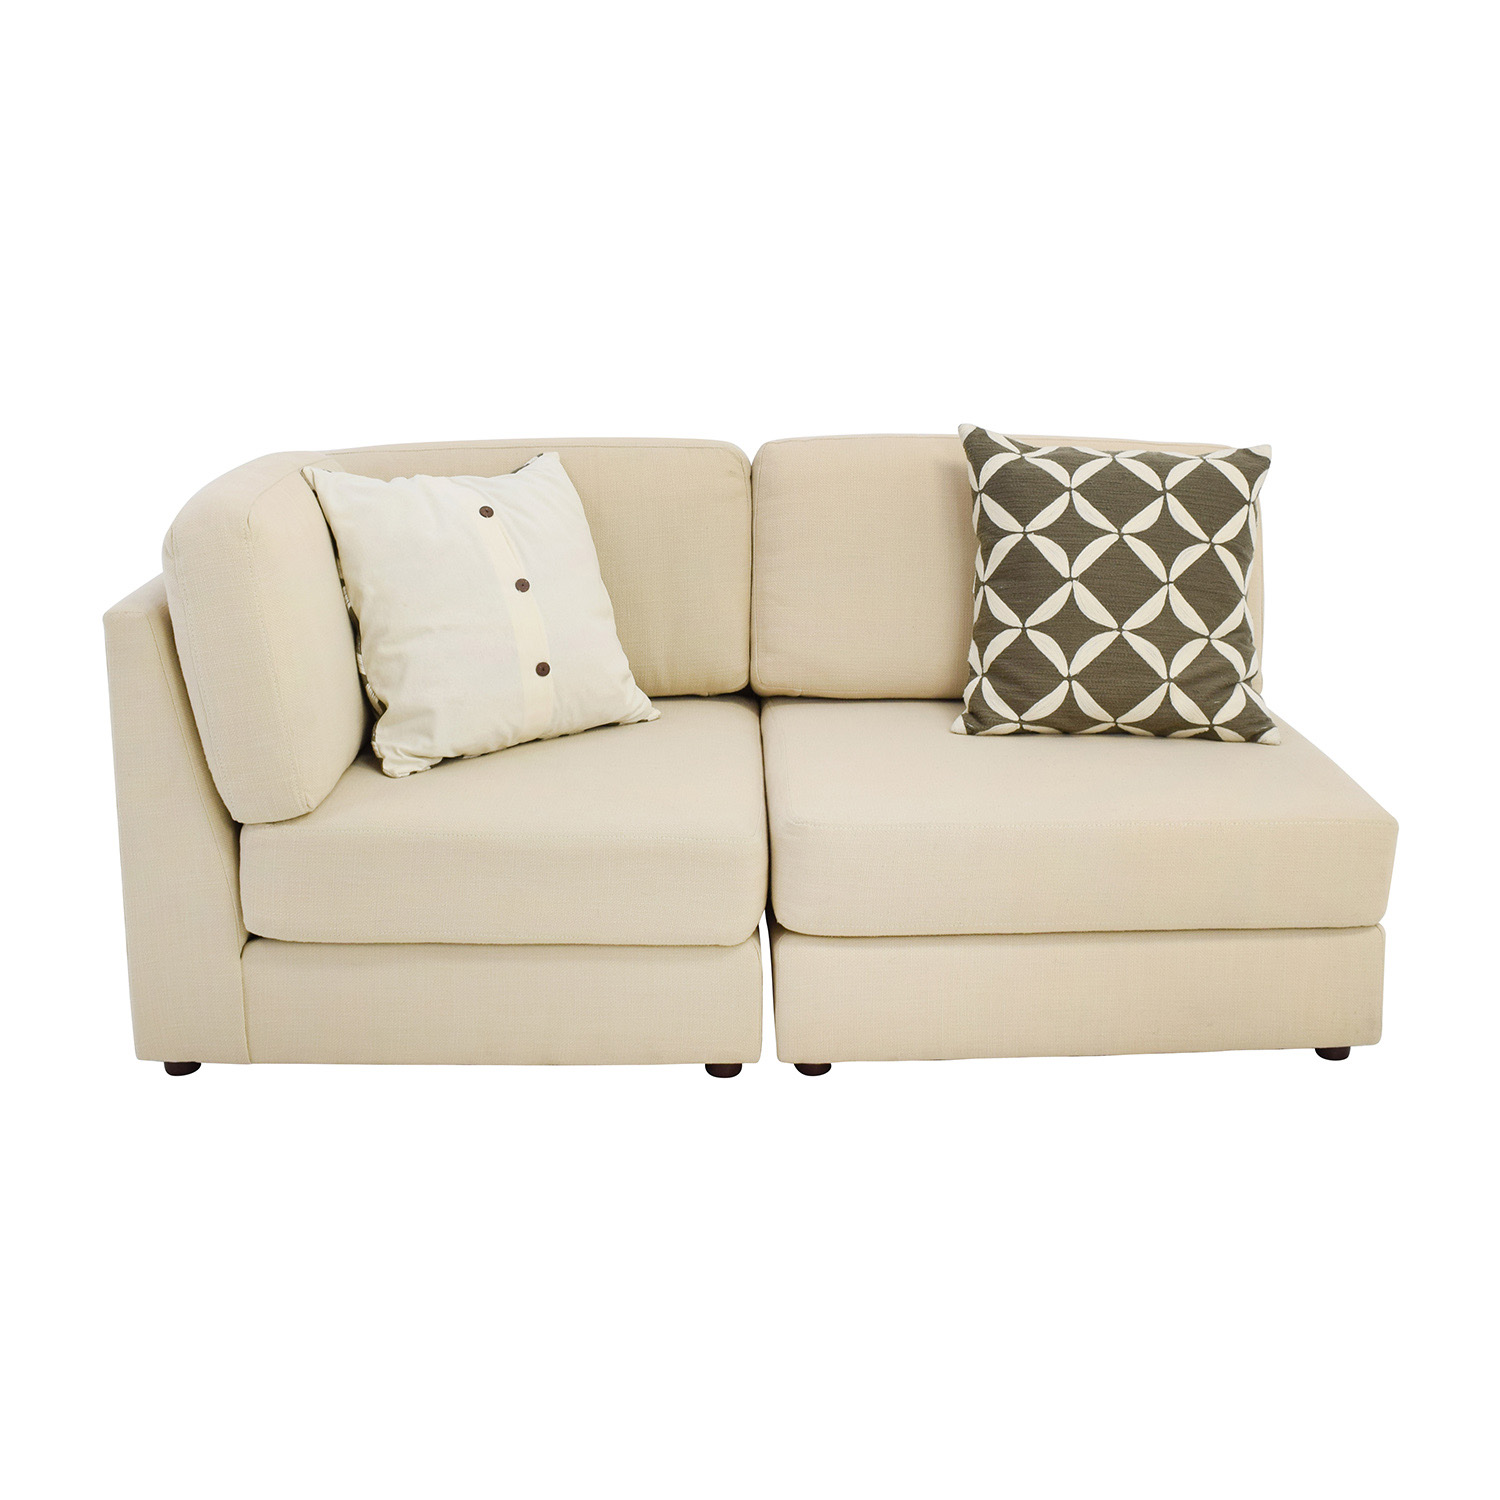 West Elm West Elm Cream Chaise Sofa or Two Chairs Classic Sofas  sc 1 st  Furnishare : cream chaise sofa - Sectionals, Sofas & Couches